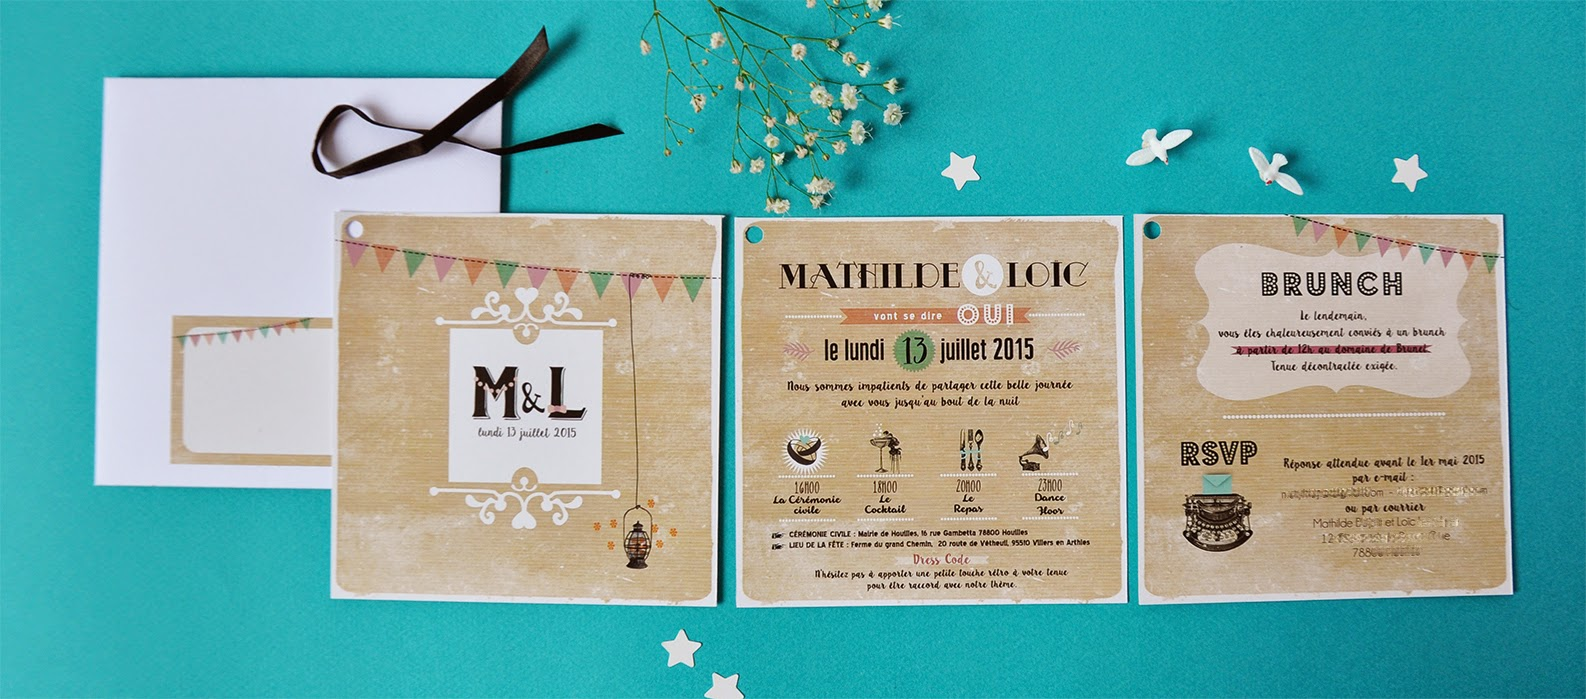 Turbo Faire part mariage vintage colore – Blog photo de mariage en 2017! TW67